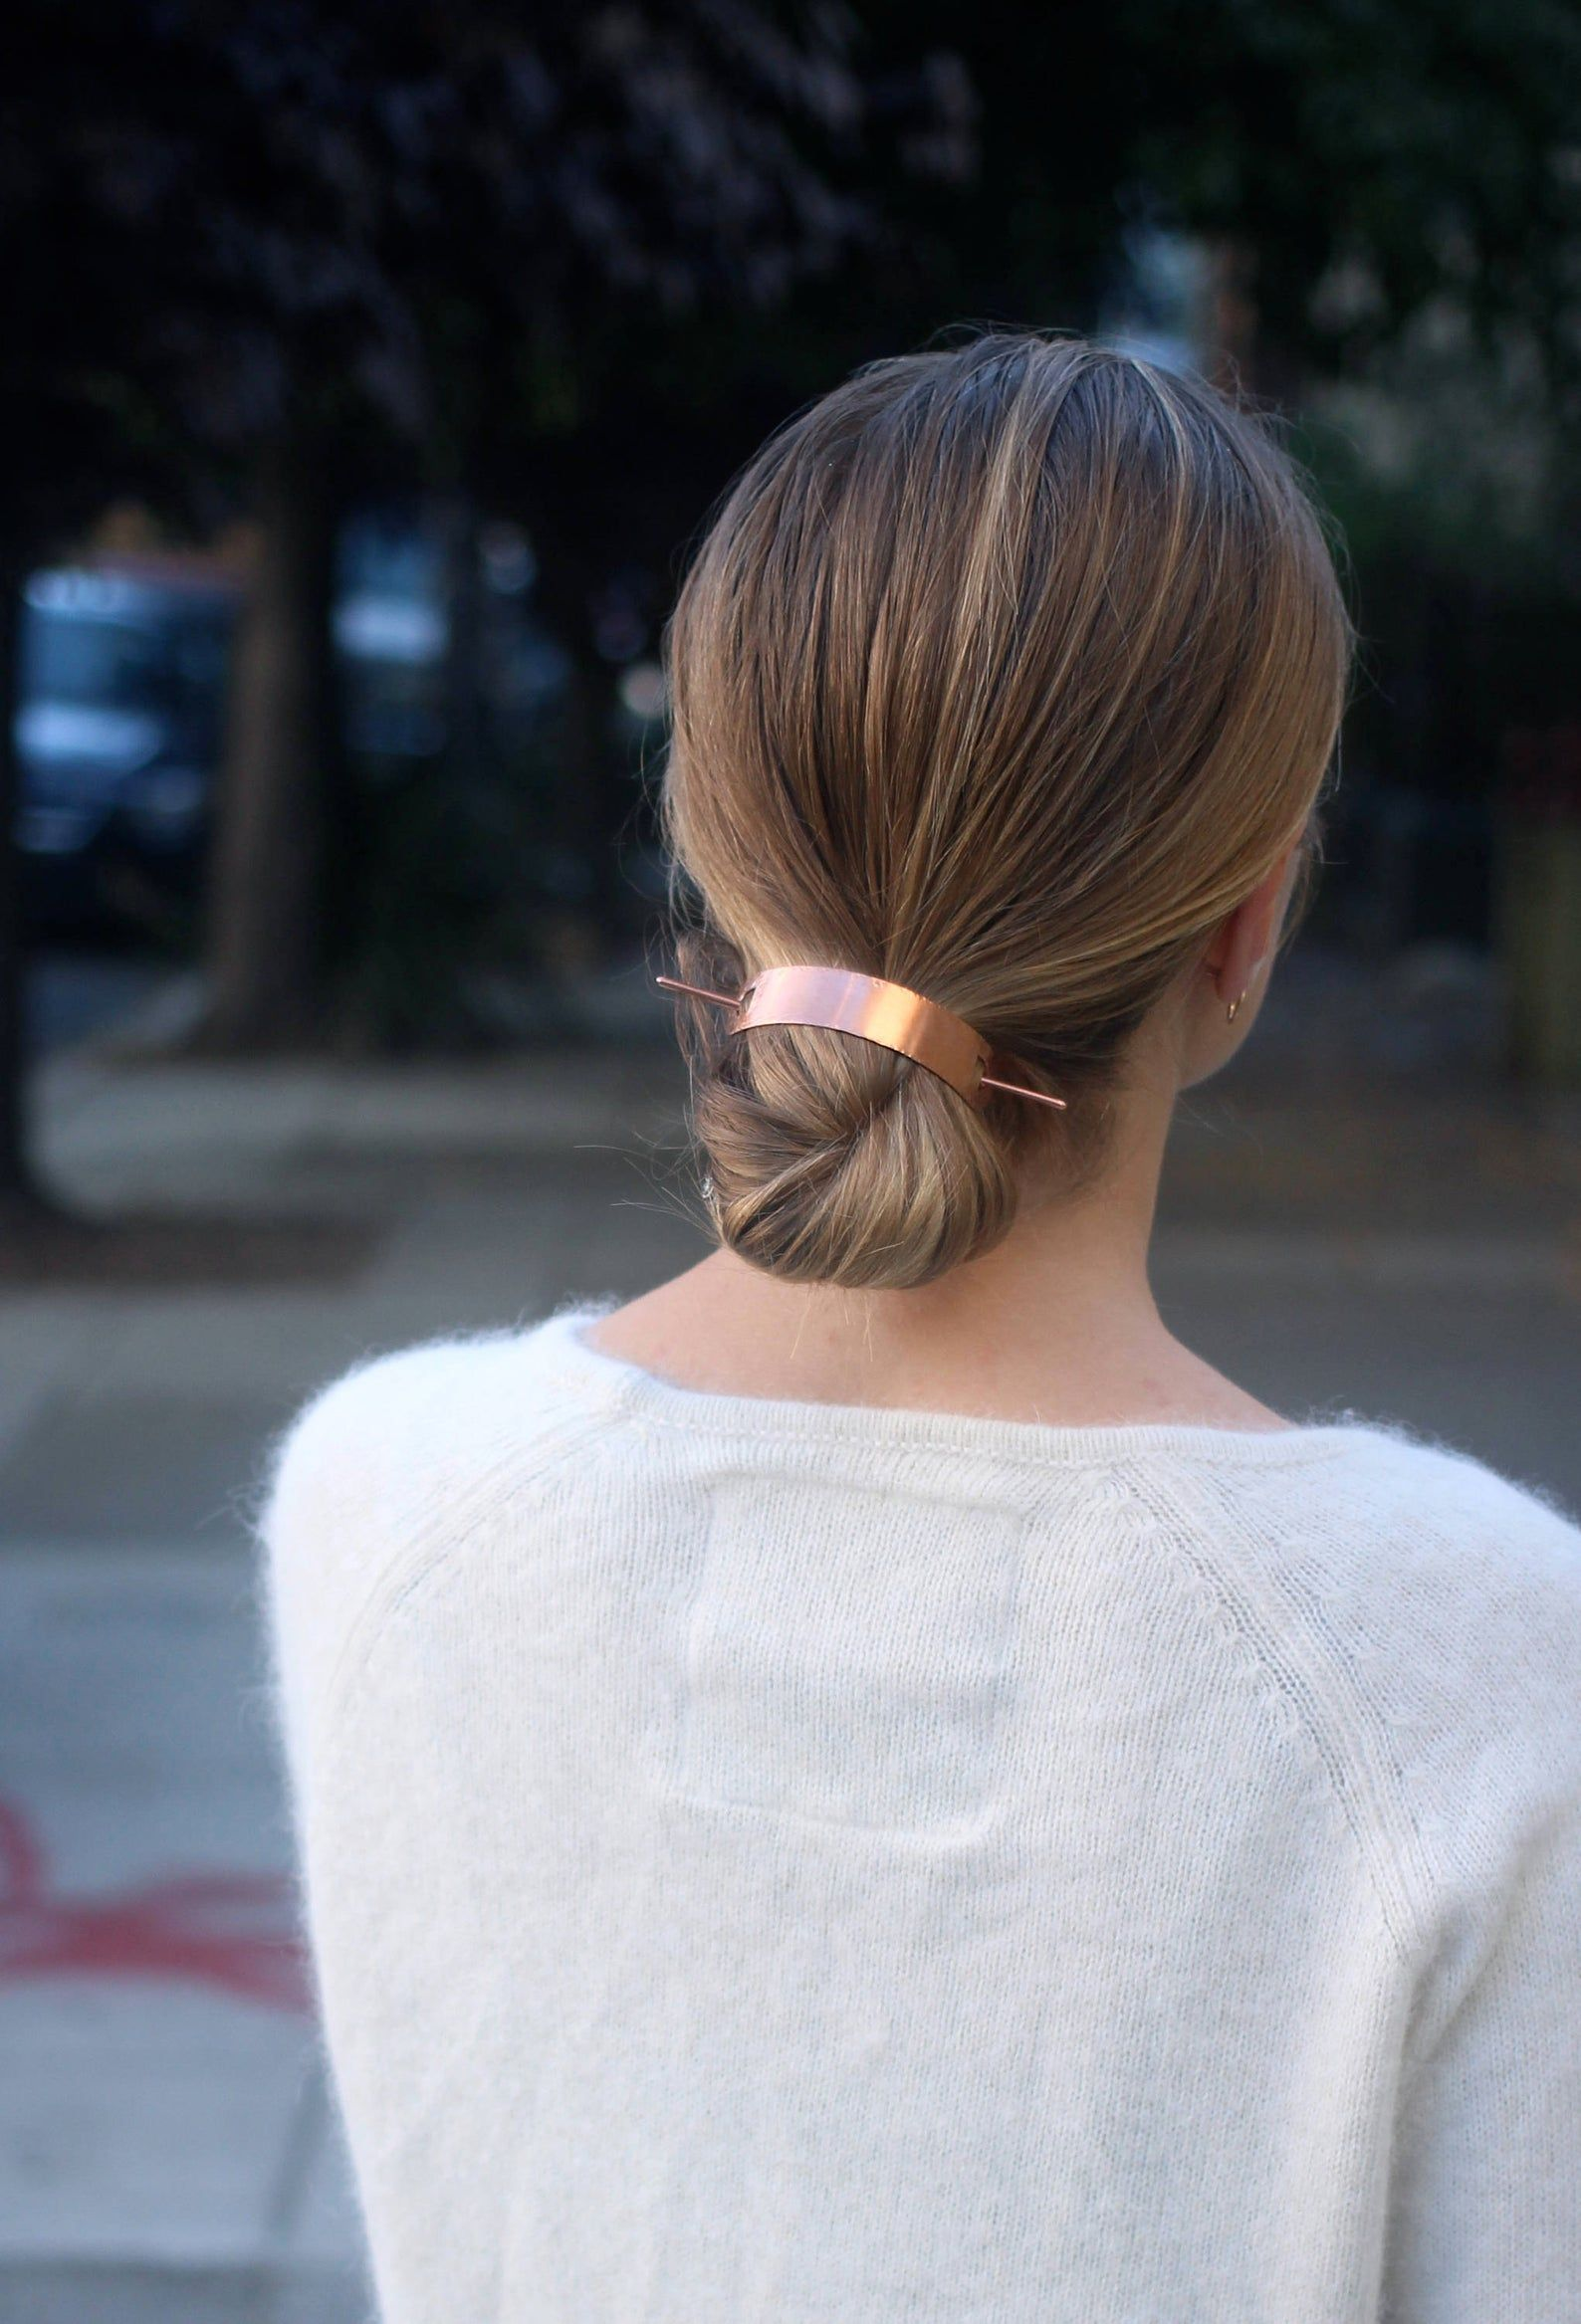 Hairstyle Ideas Layers Hairstyle Ideas For One Shoulder Dress Hairstyle Ideas For Heart Shaped Face Hairstyle In 2020 Dutt Frisur Haar Accessoires Haaraccessoires